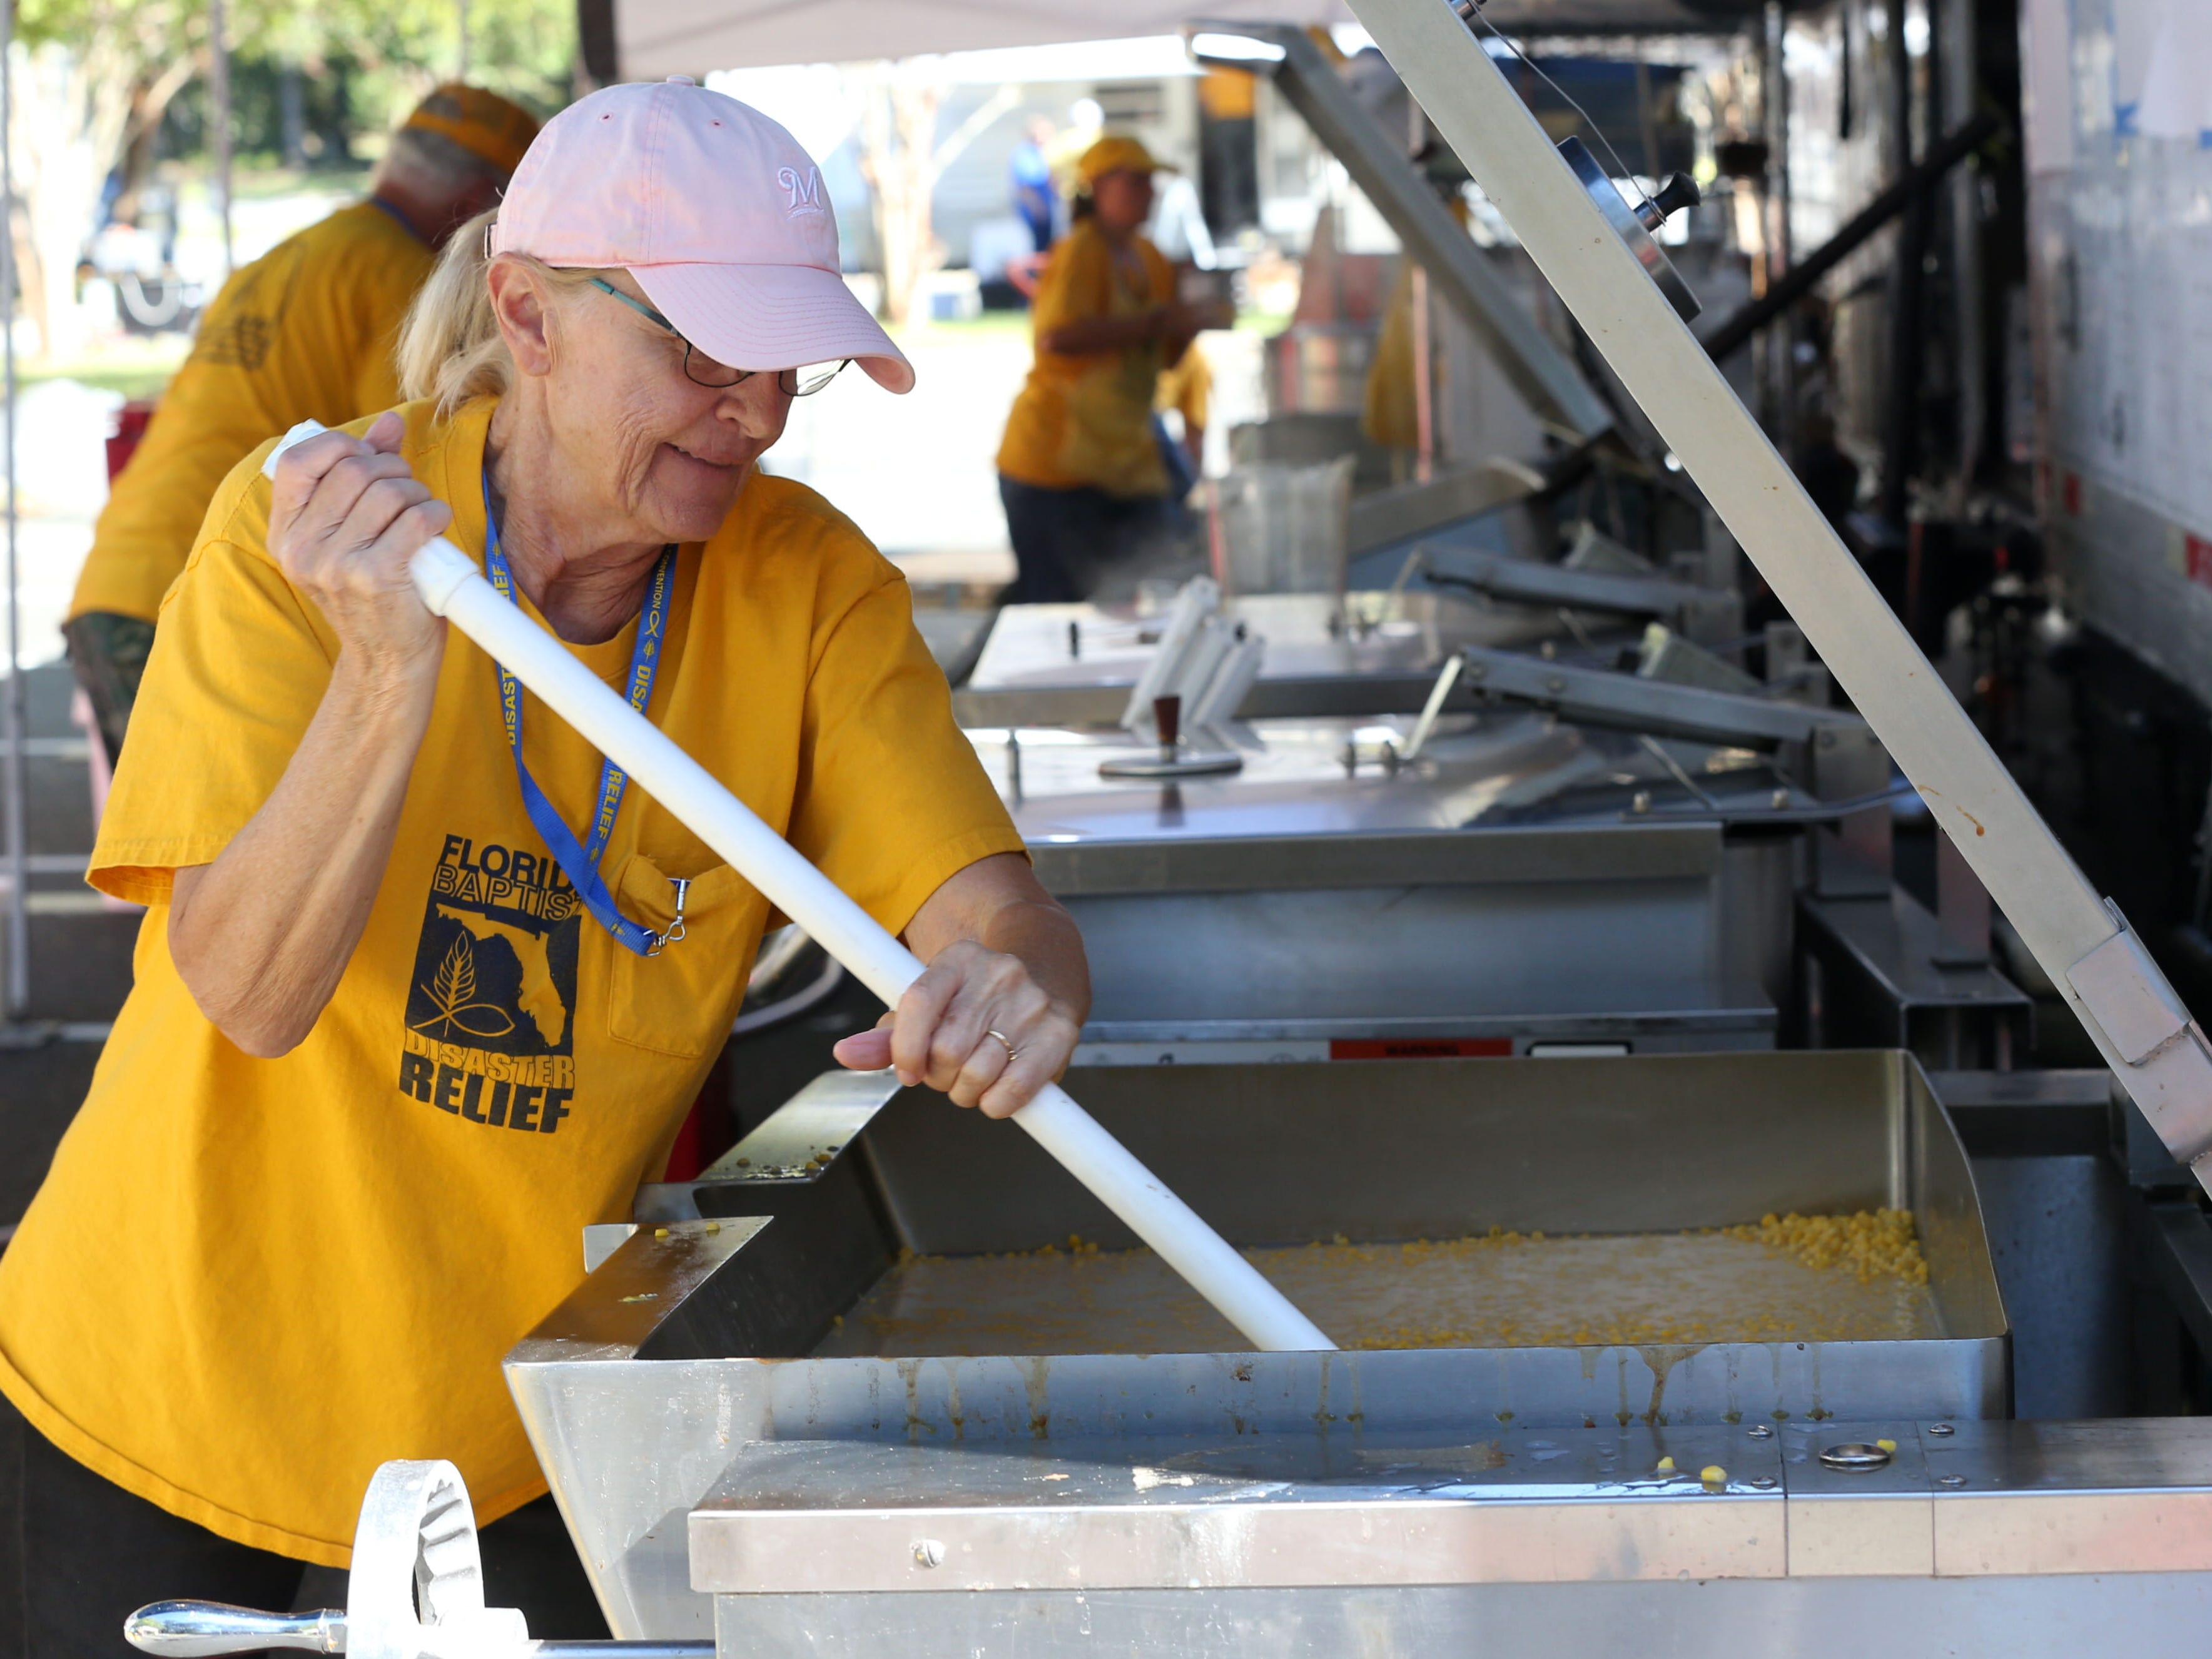 Southern Baptist Disaster Relief and the American Red Cross team up at Thomasville Road Baptist Church to make and package meals for locals on Saturday, Oct. 13, 2018, three days after Hurricane Michael struck the Florida panhandle.